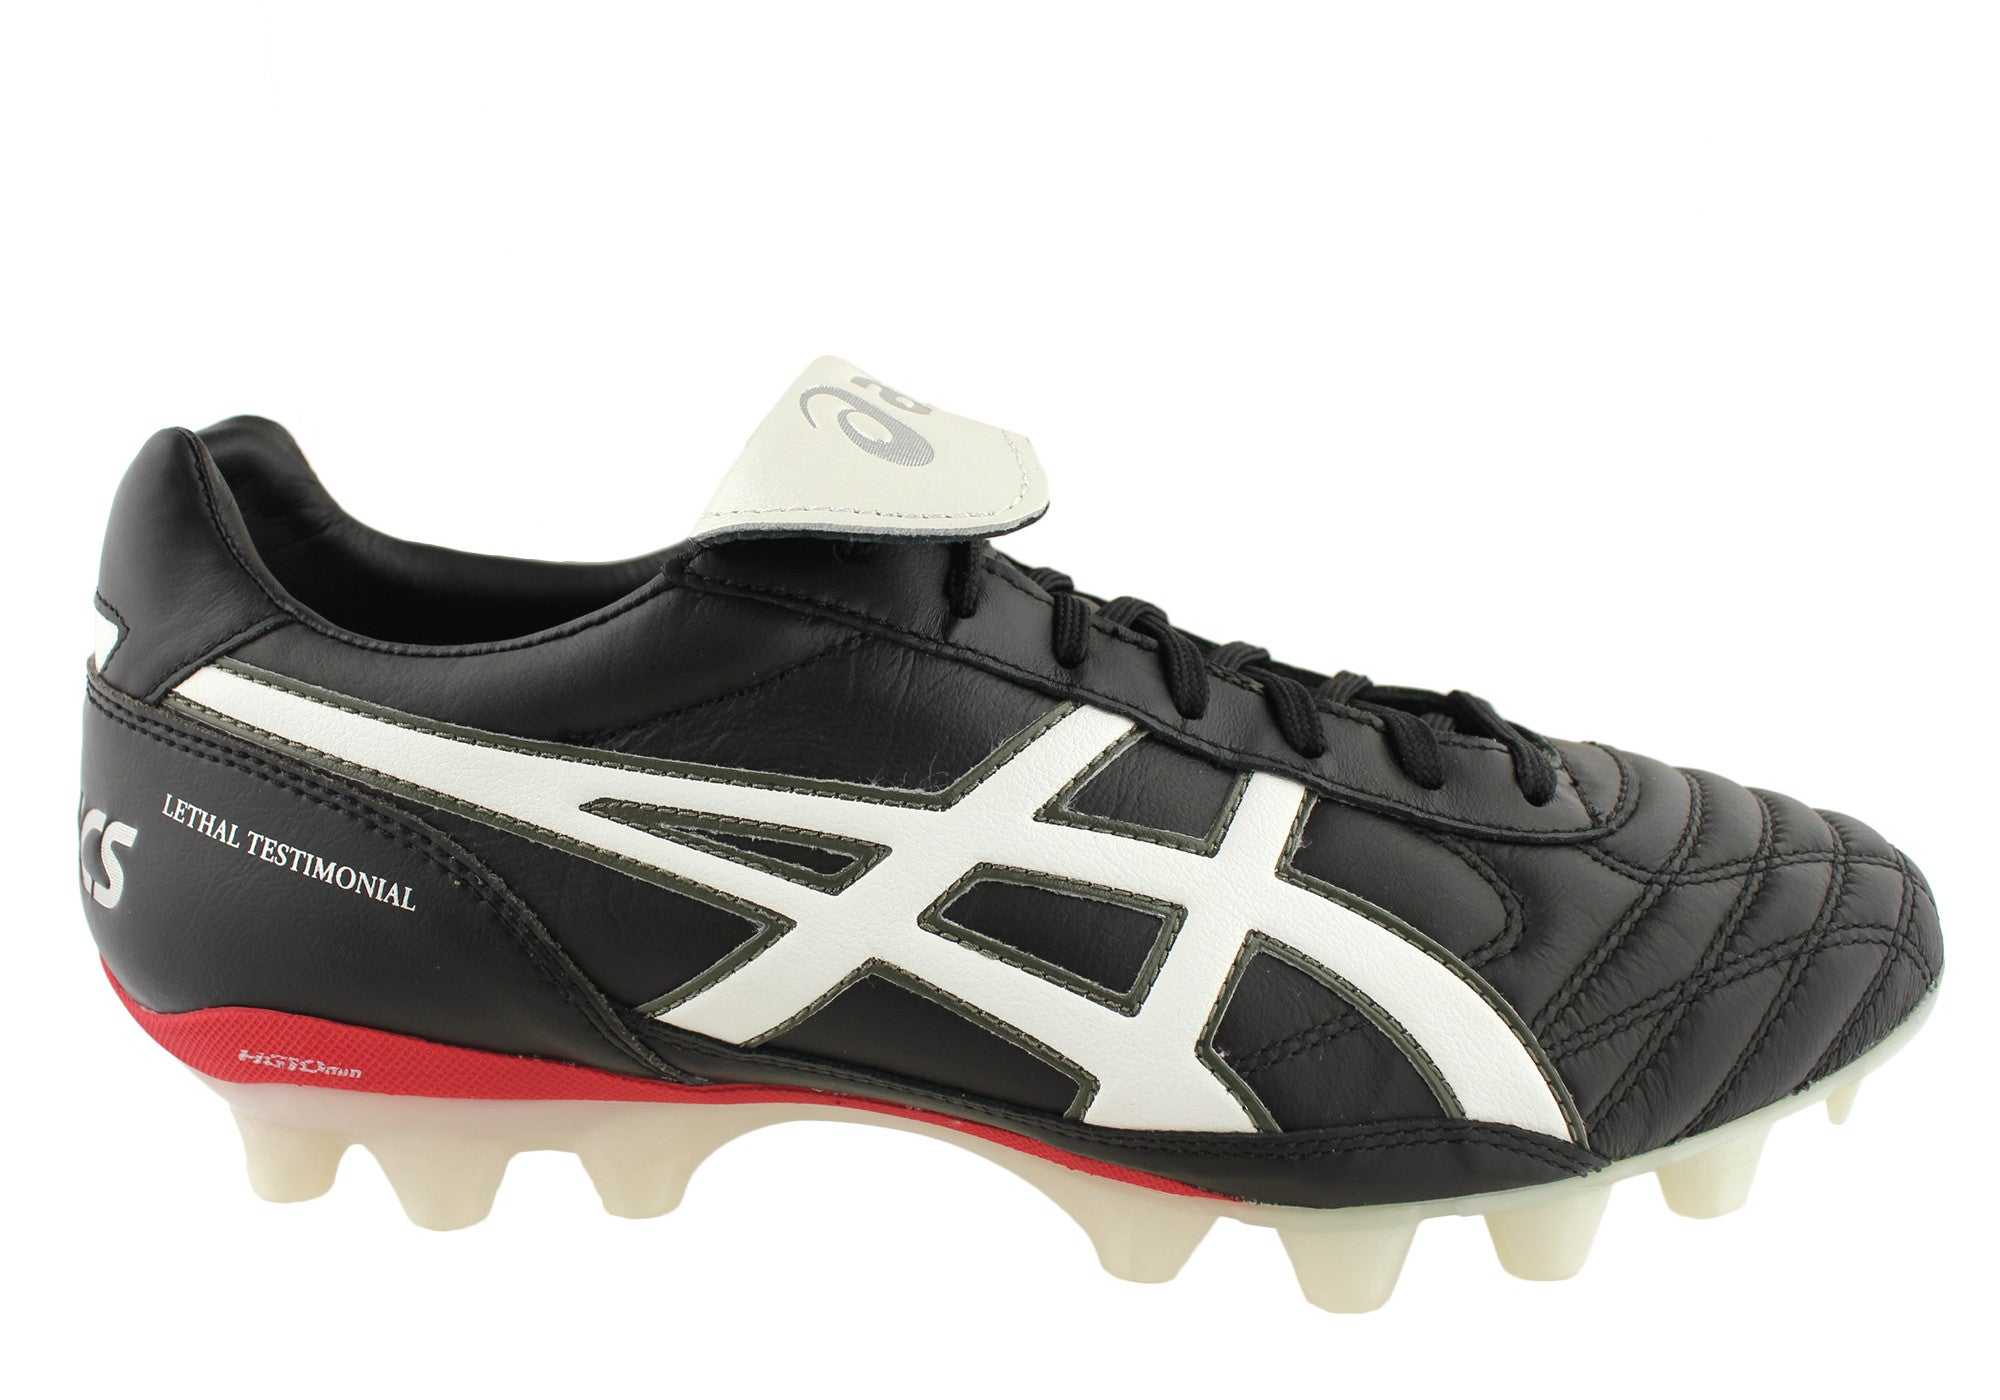 63df4b2d1 Asics Lethal Testimonial 2 IT Mens Football Soccer Boots